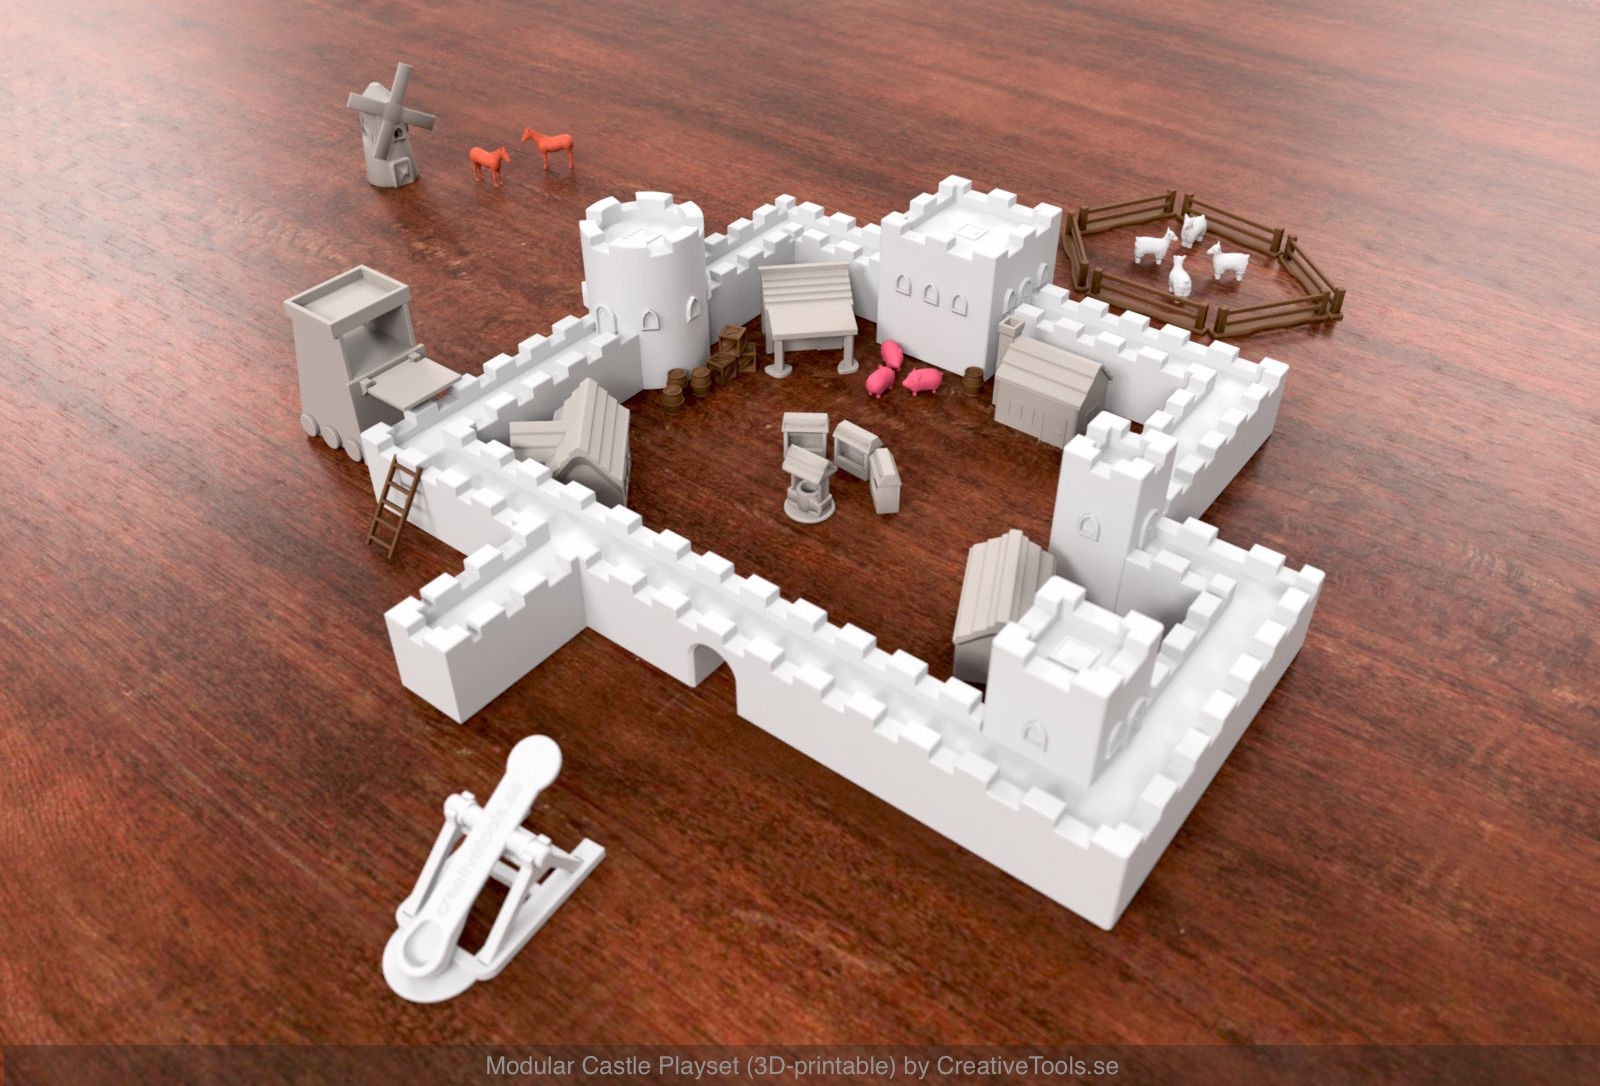 Modular-castle-playset-3d-printable---main-image-v01-copy-3500-3500